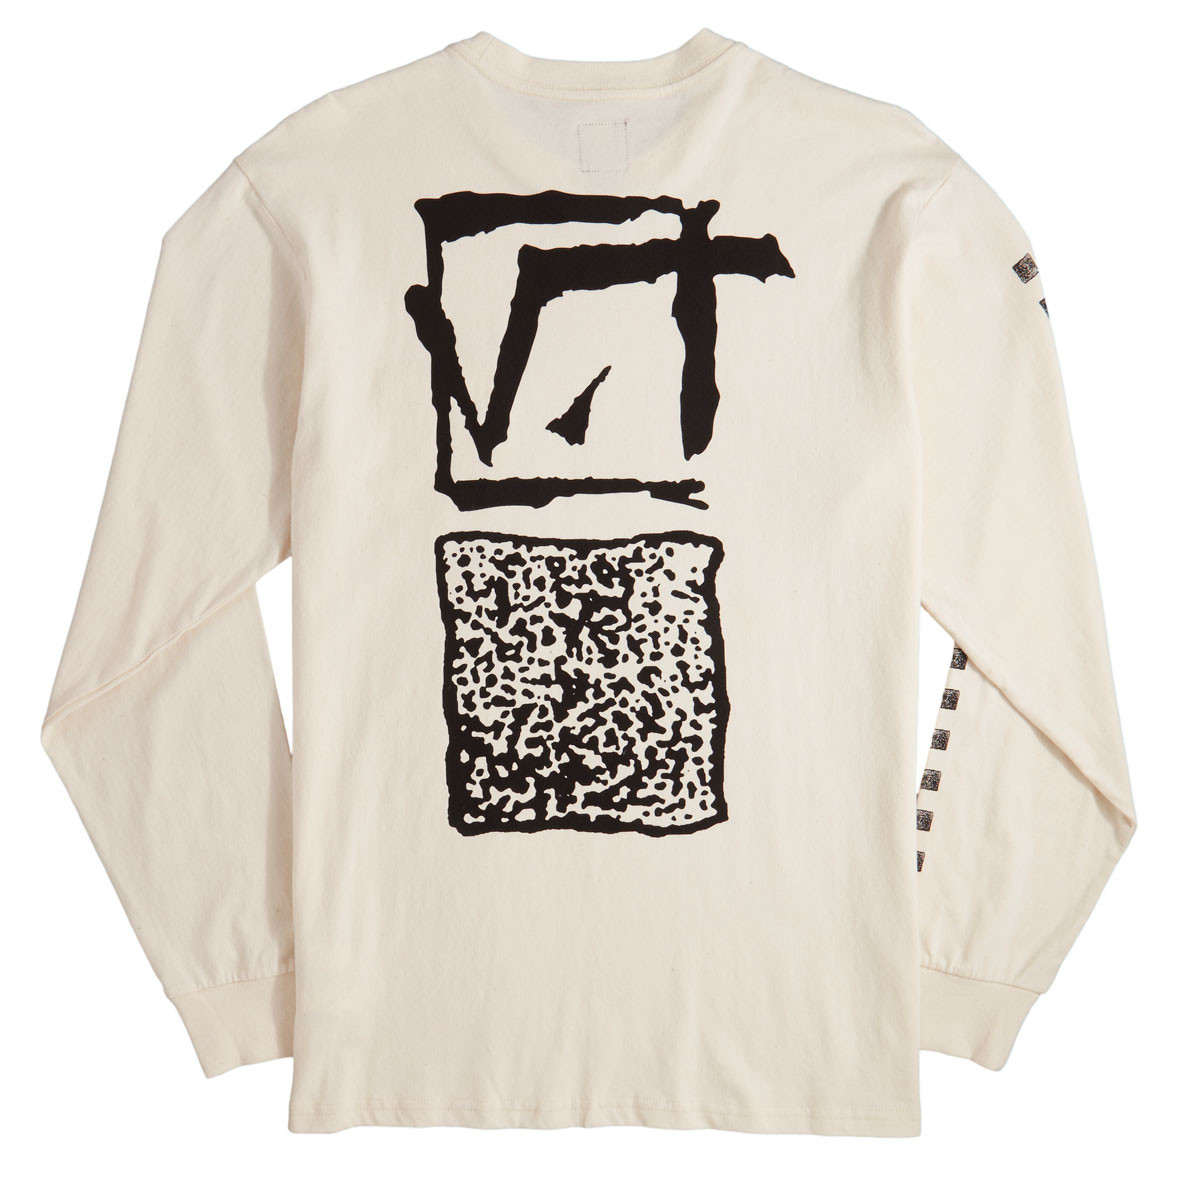 87dffcd88598 Vans Square Root Long Sleeve T-Shirt - Raw Cotton